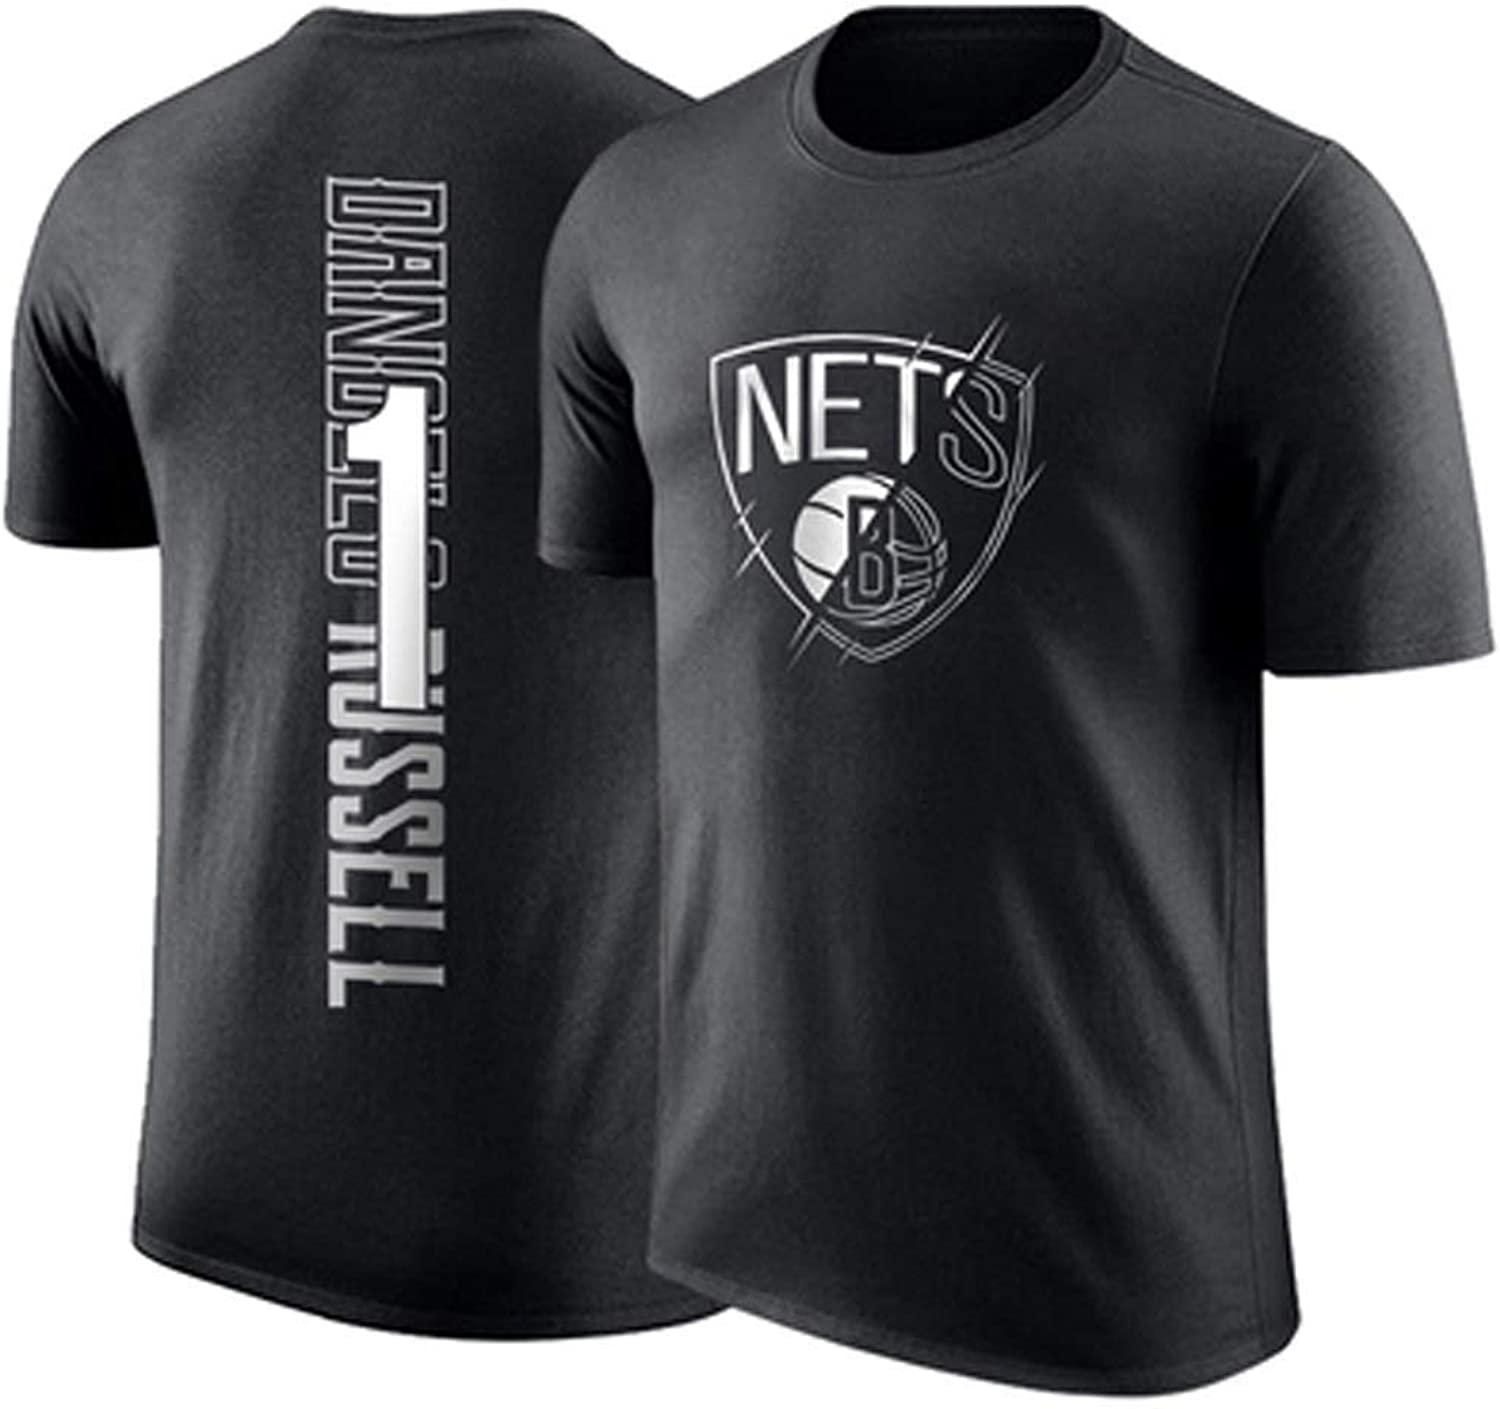 Nets Russell Jersey ShortSleeved TShirt Round Neck Cotton Basketball Training Suit SweatAbsorbent Breathable CHENGGONG